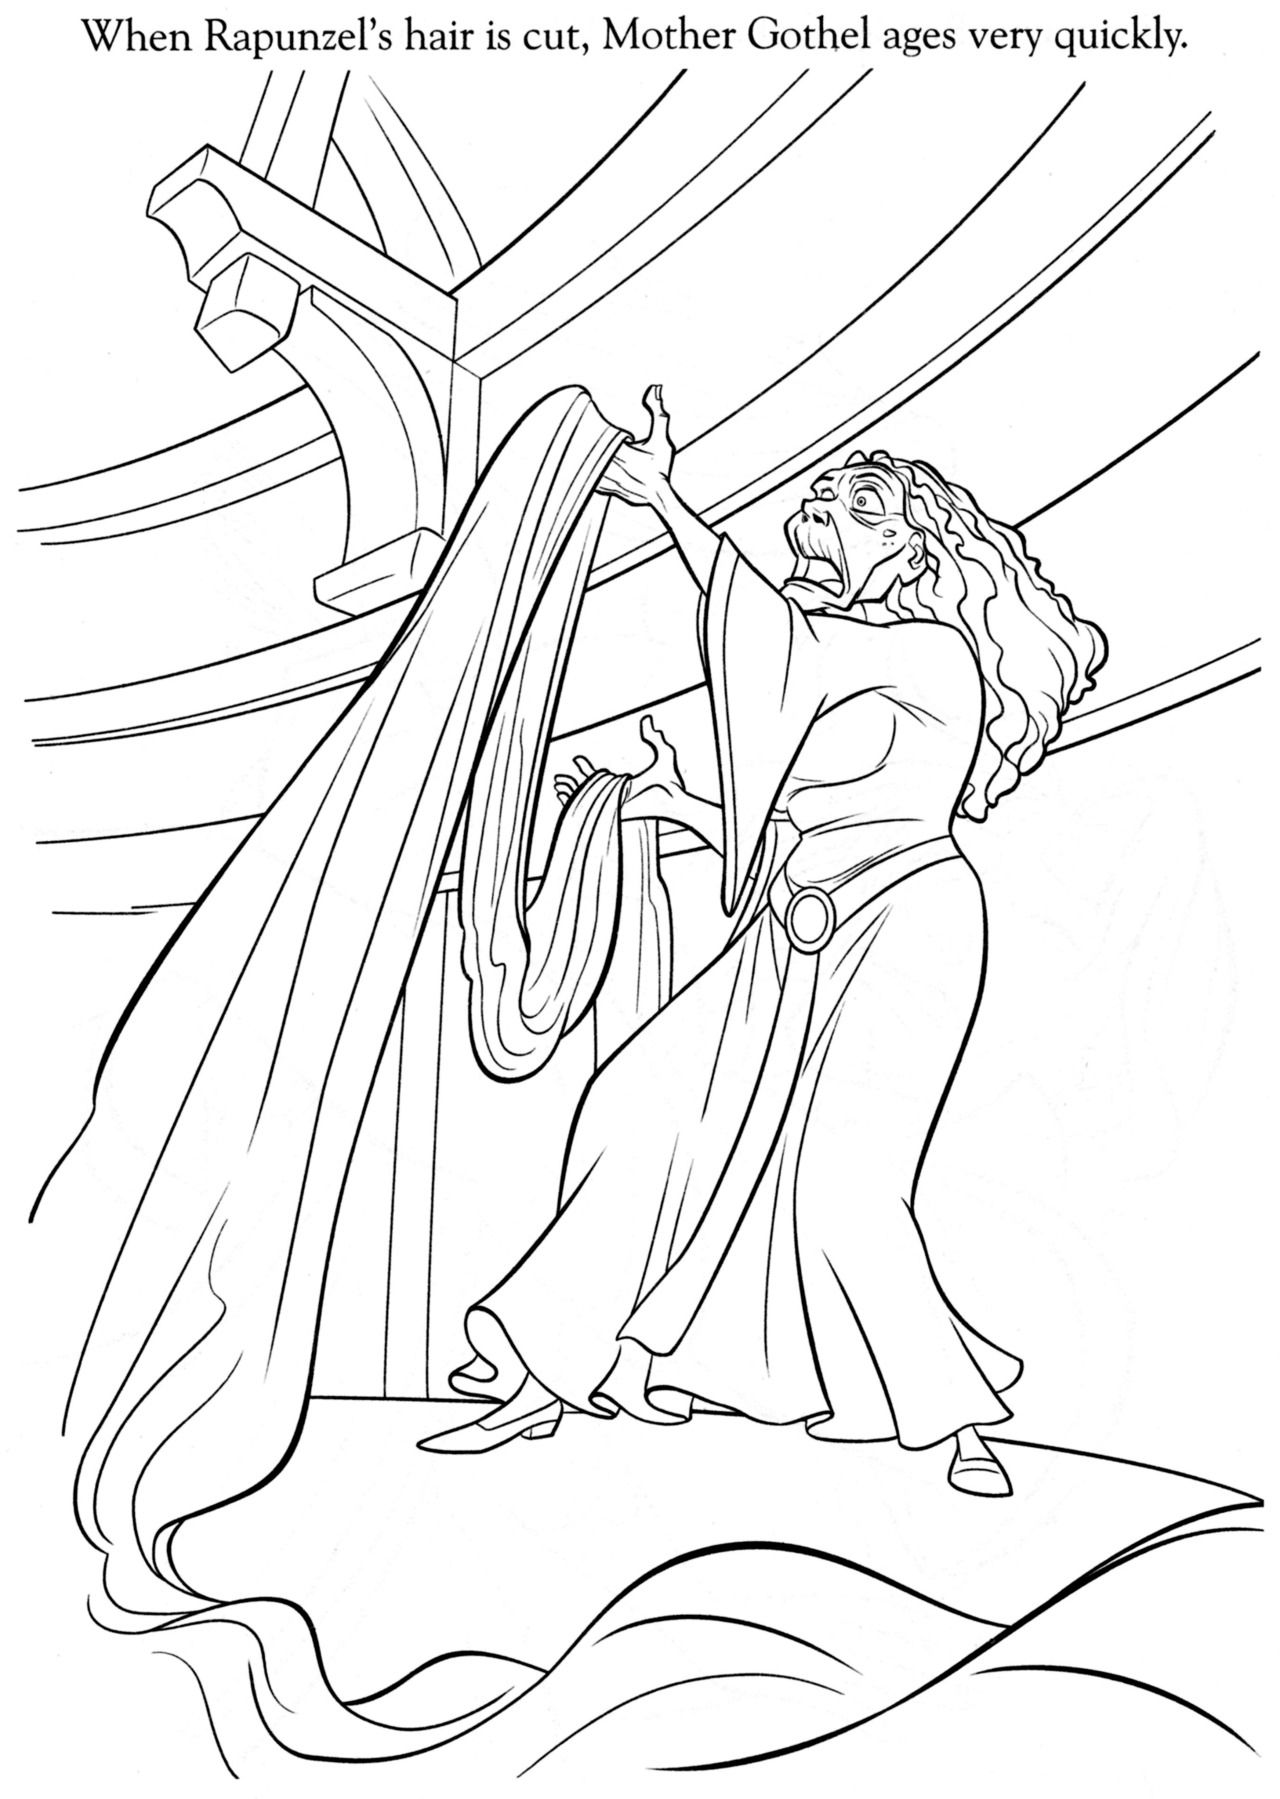 Pin By Michael S Family On Coloring Pages And Fun Images To Draw Tangled Coloring Pages Princess Coloring Pages Rapunzel Coloring Pages